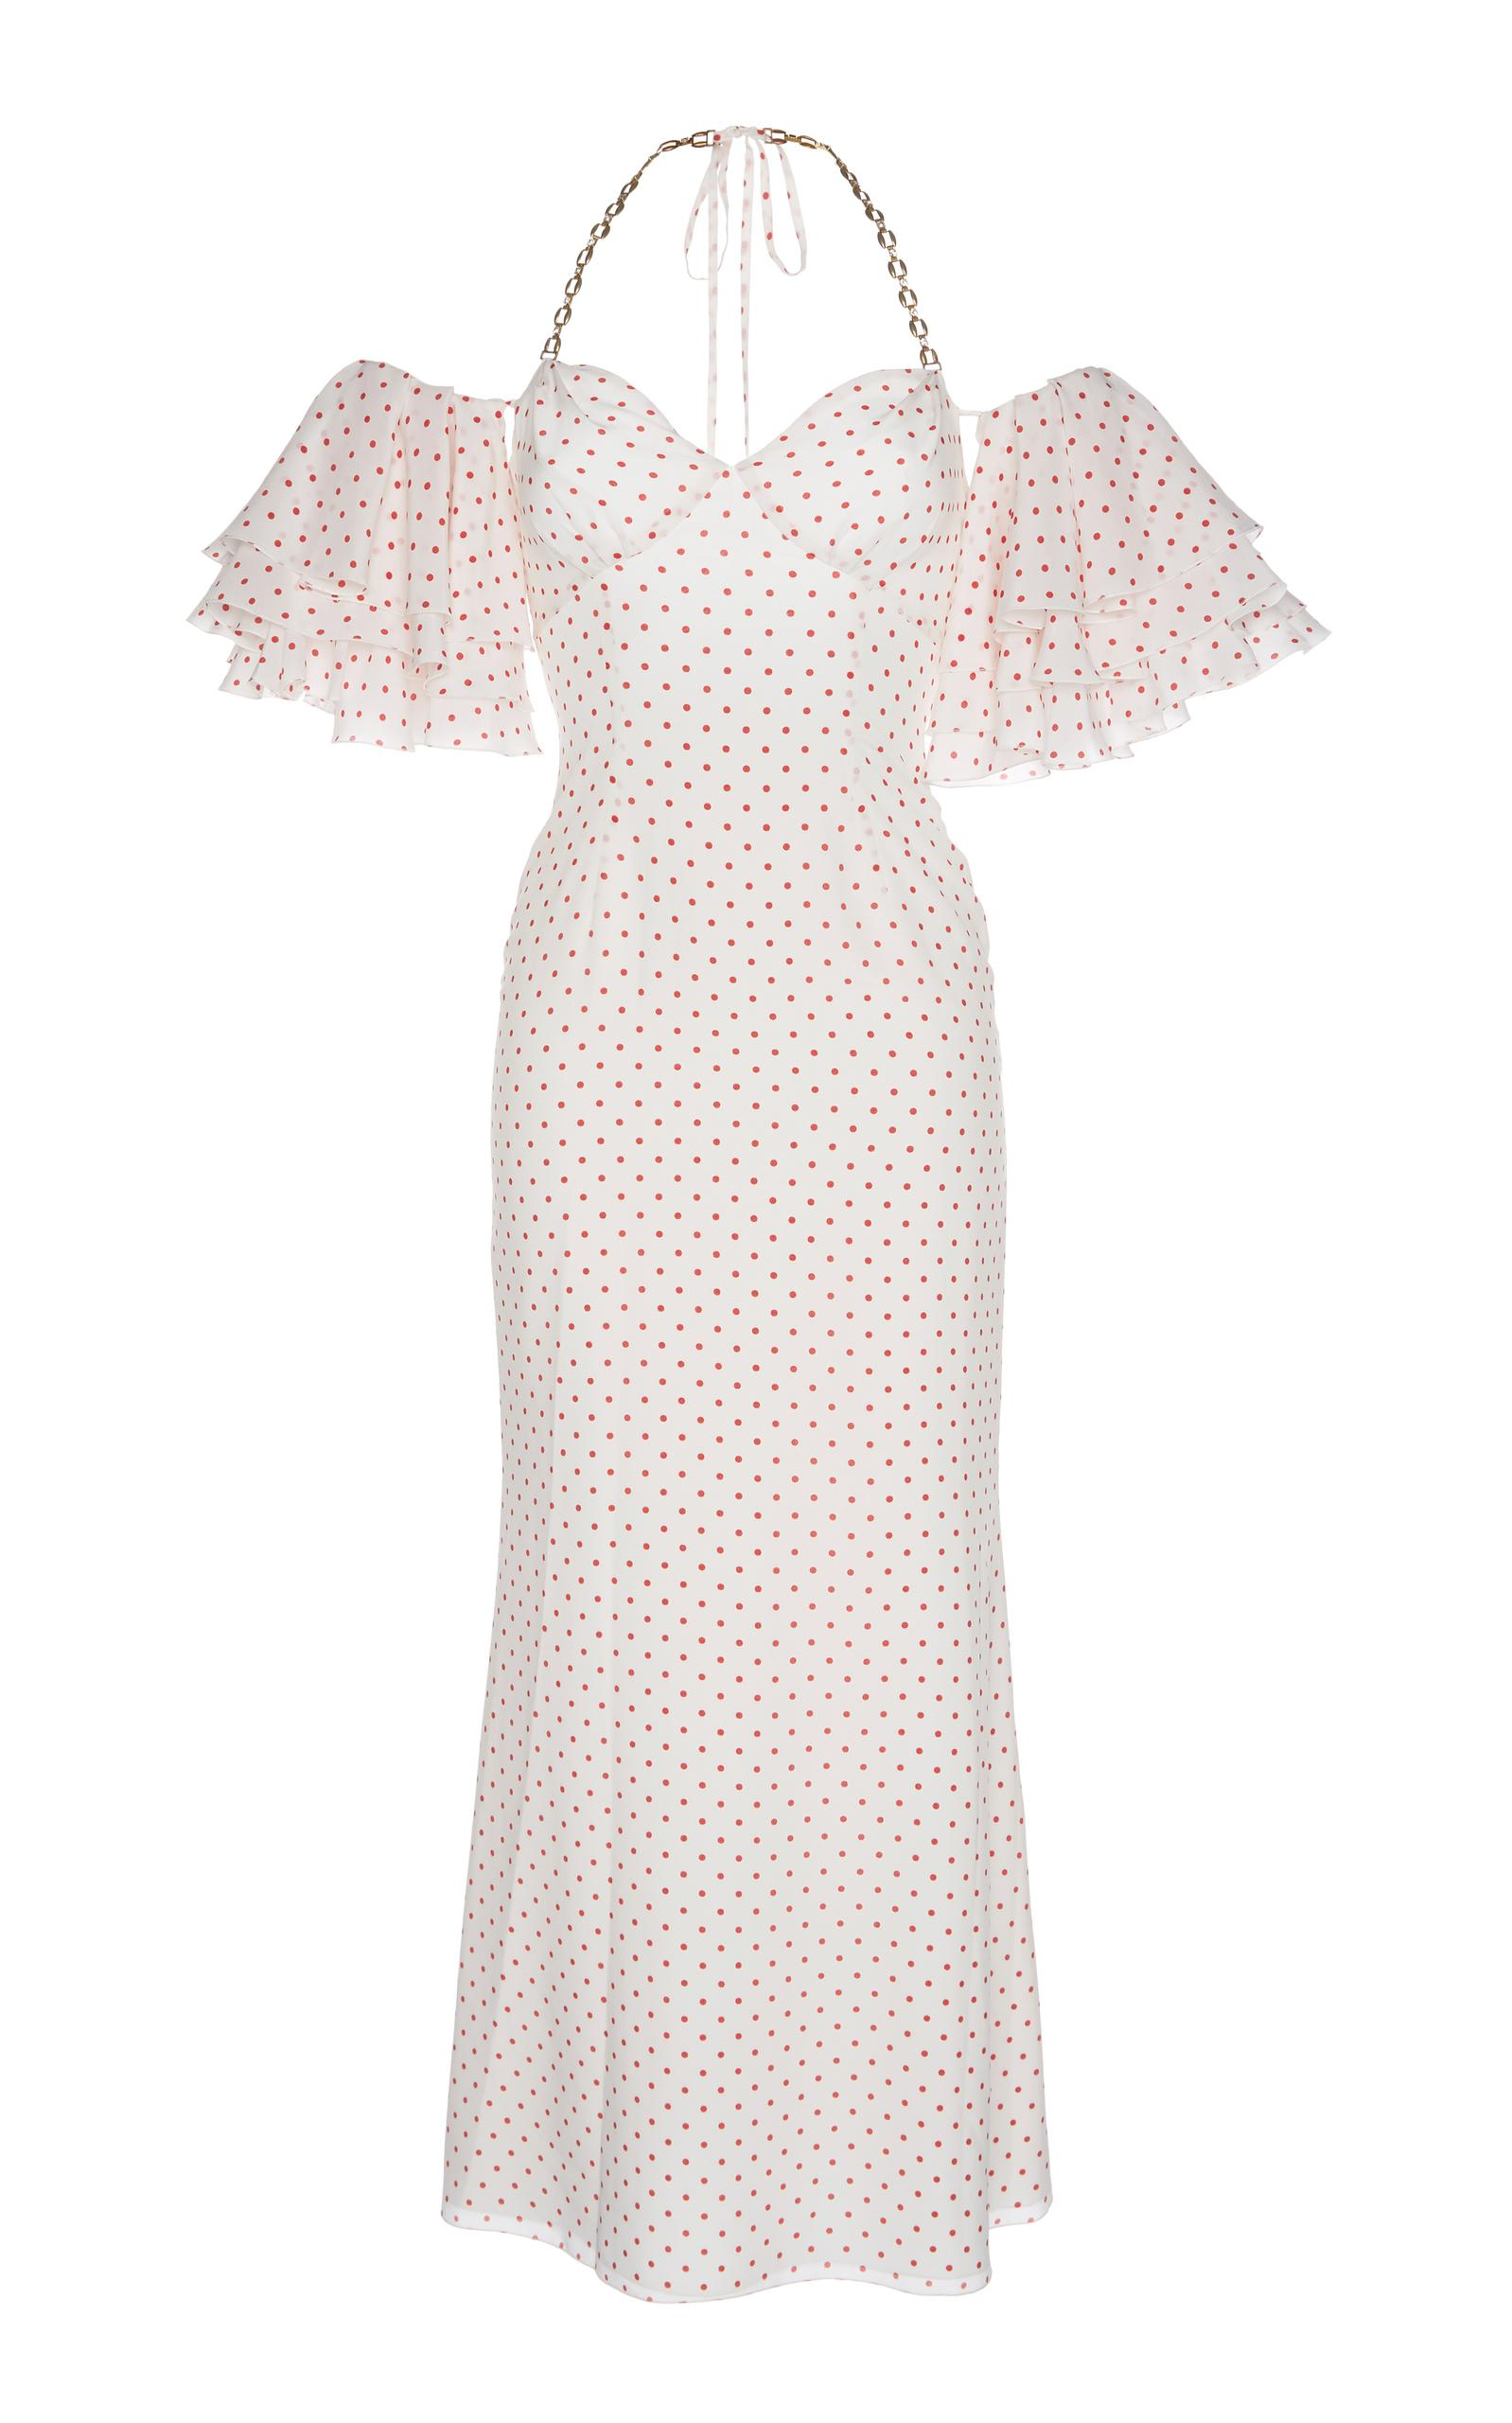 Alessandra Rich Polka Dot Off The Shoulder Dress In White